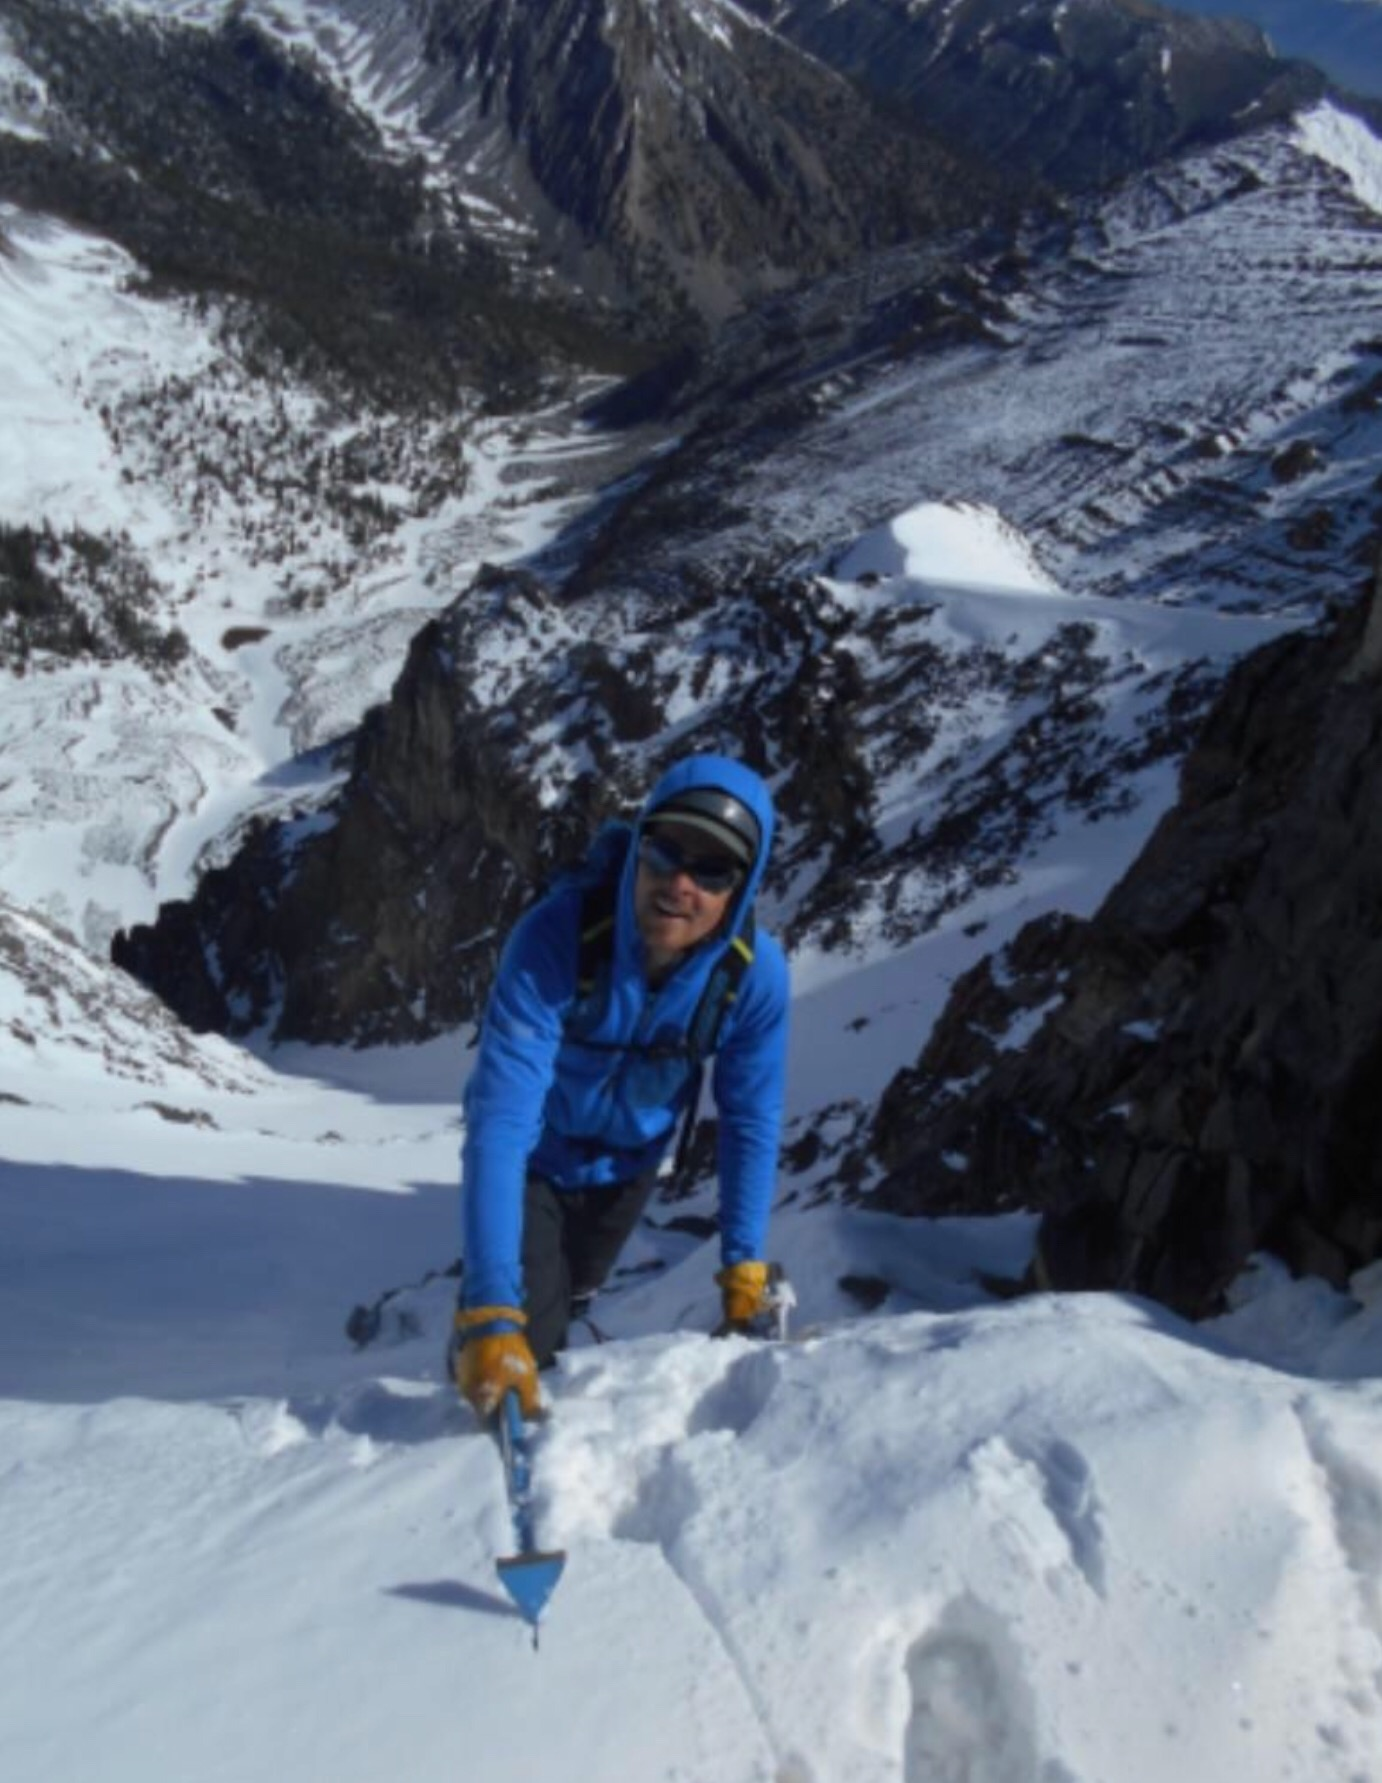 Taylor topping out on the North Couloir. Pat McGrane Photo